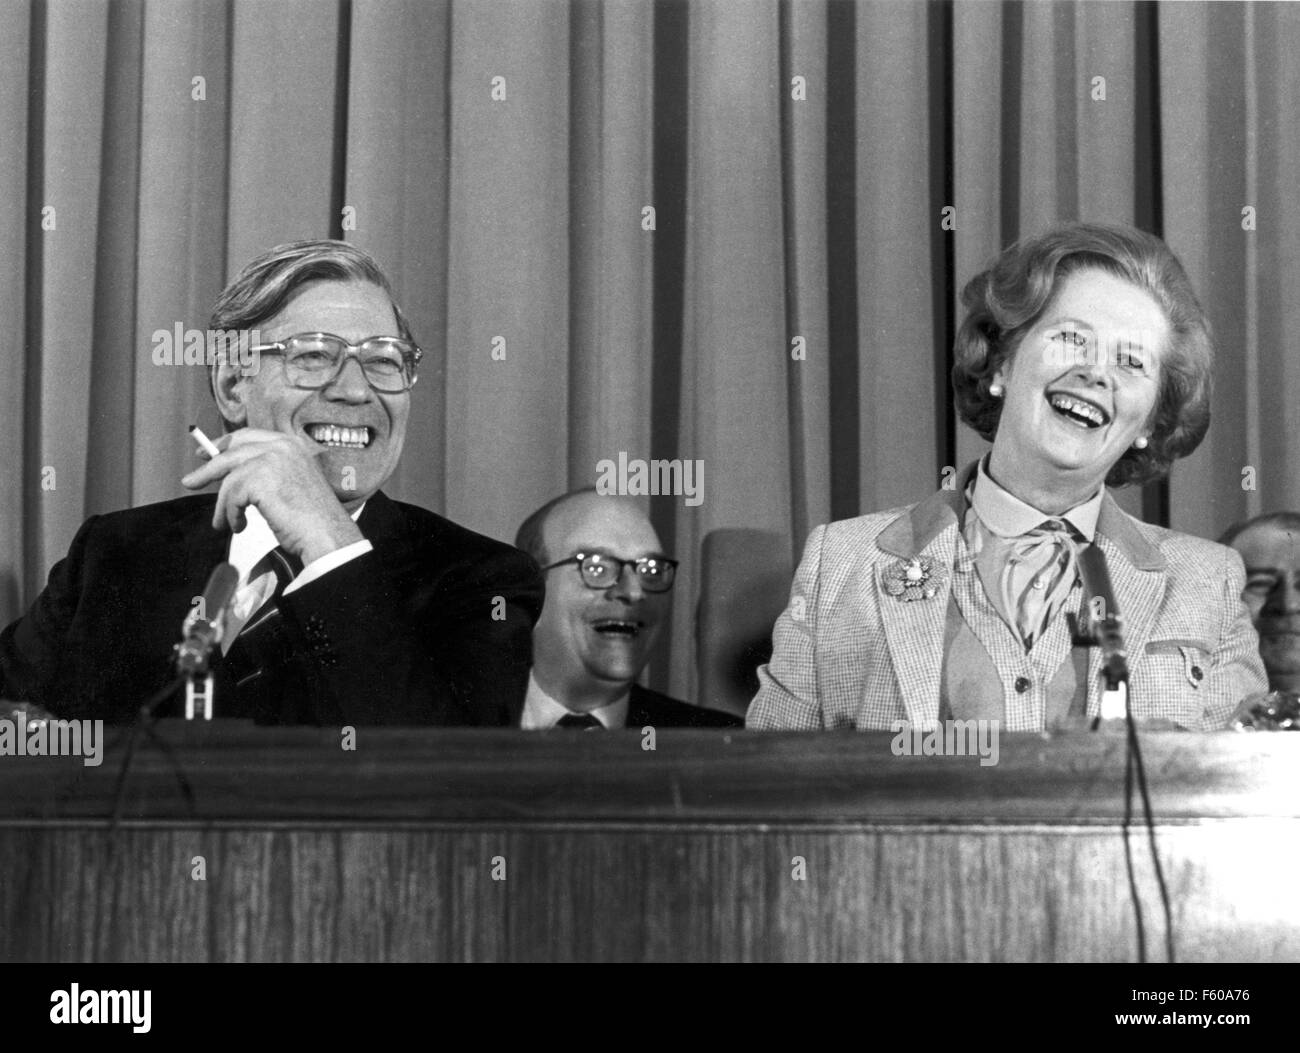 Chancellor Helmut Schmidt (L) and British Prime Minister Margaret Thatcher are in a good mood during a press conference - Stock Image